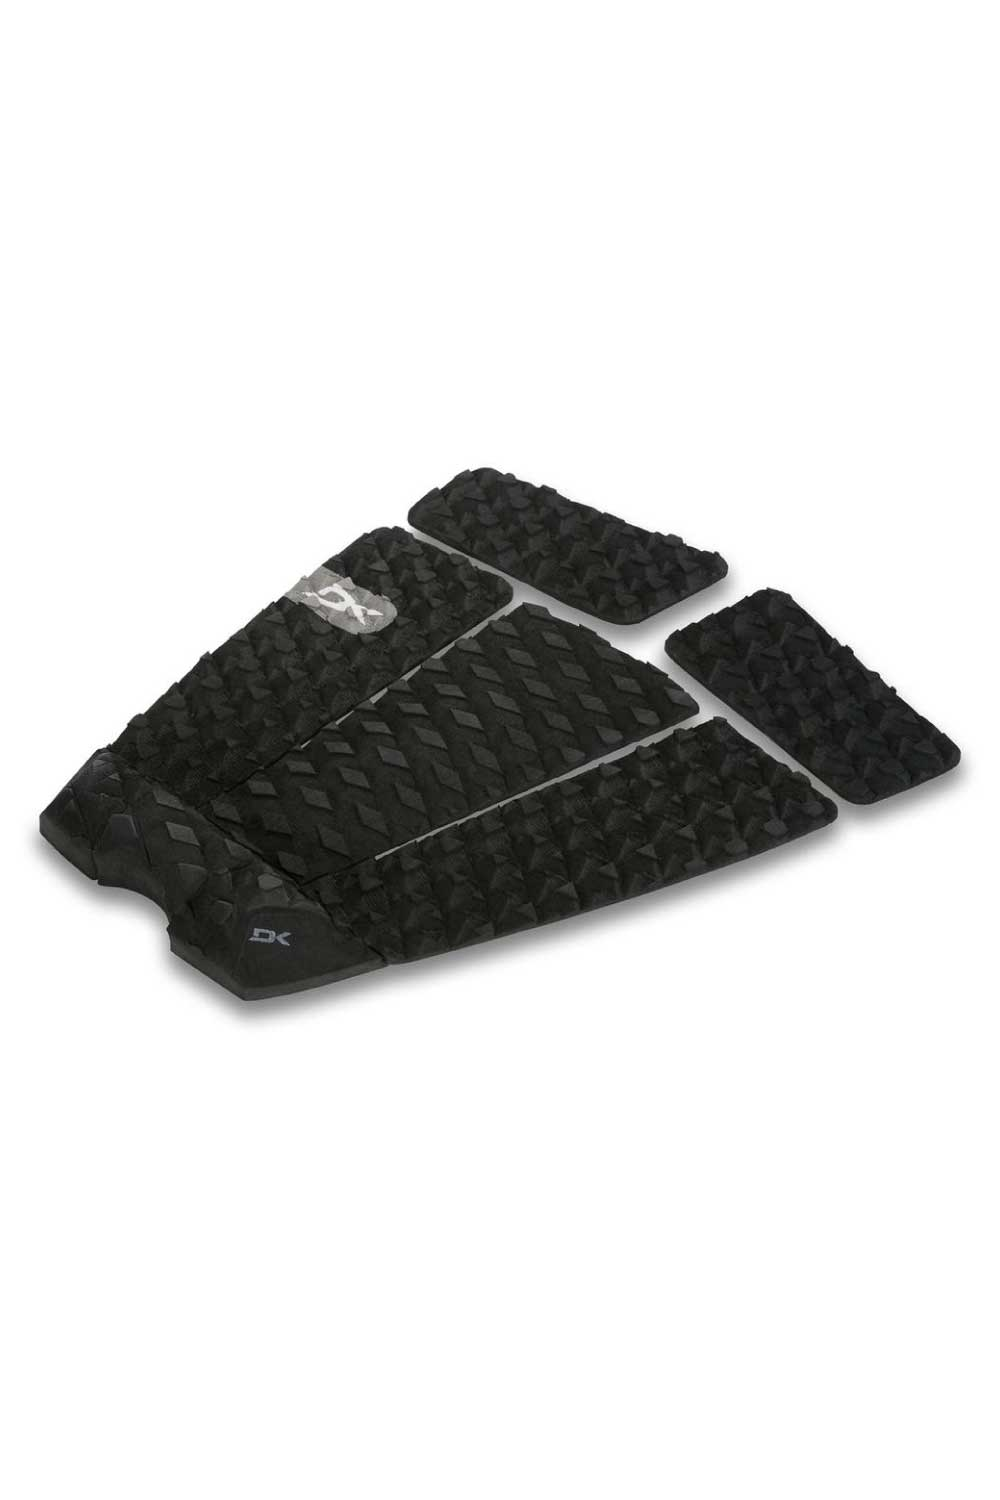 Dakine Bruce Irons Tail Pad Traction